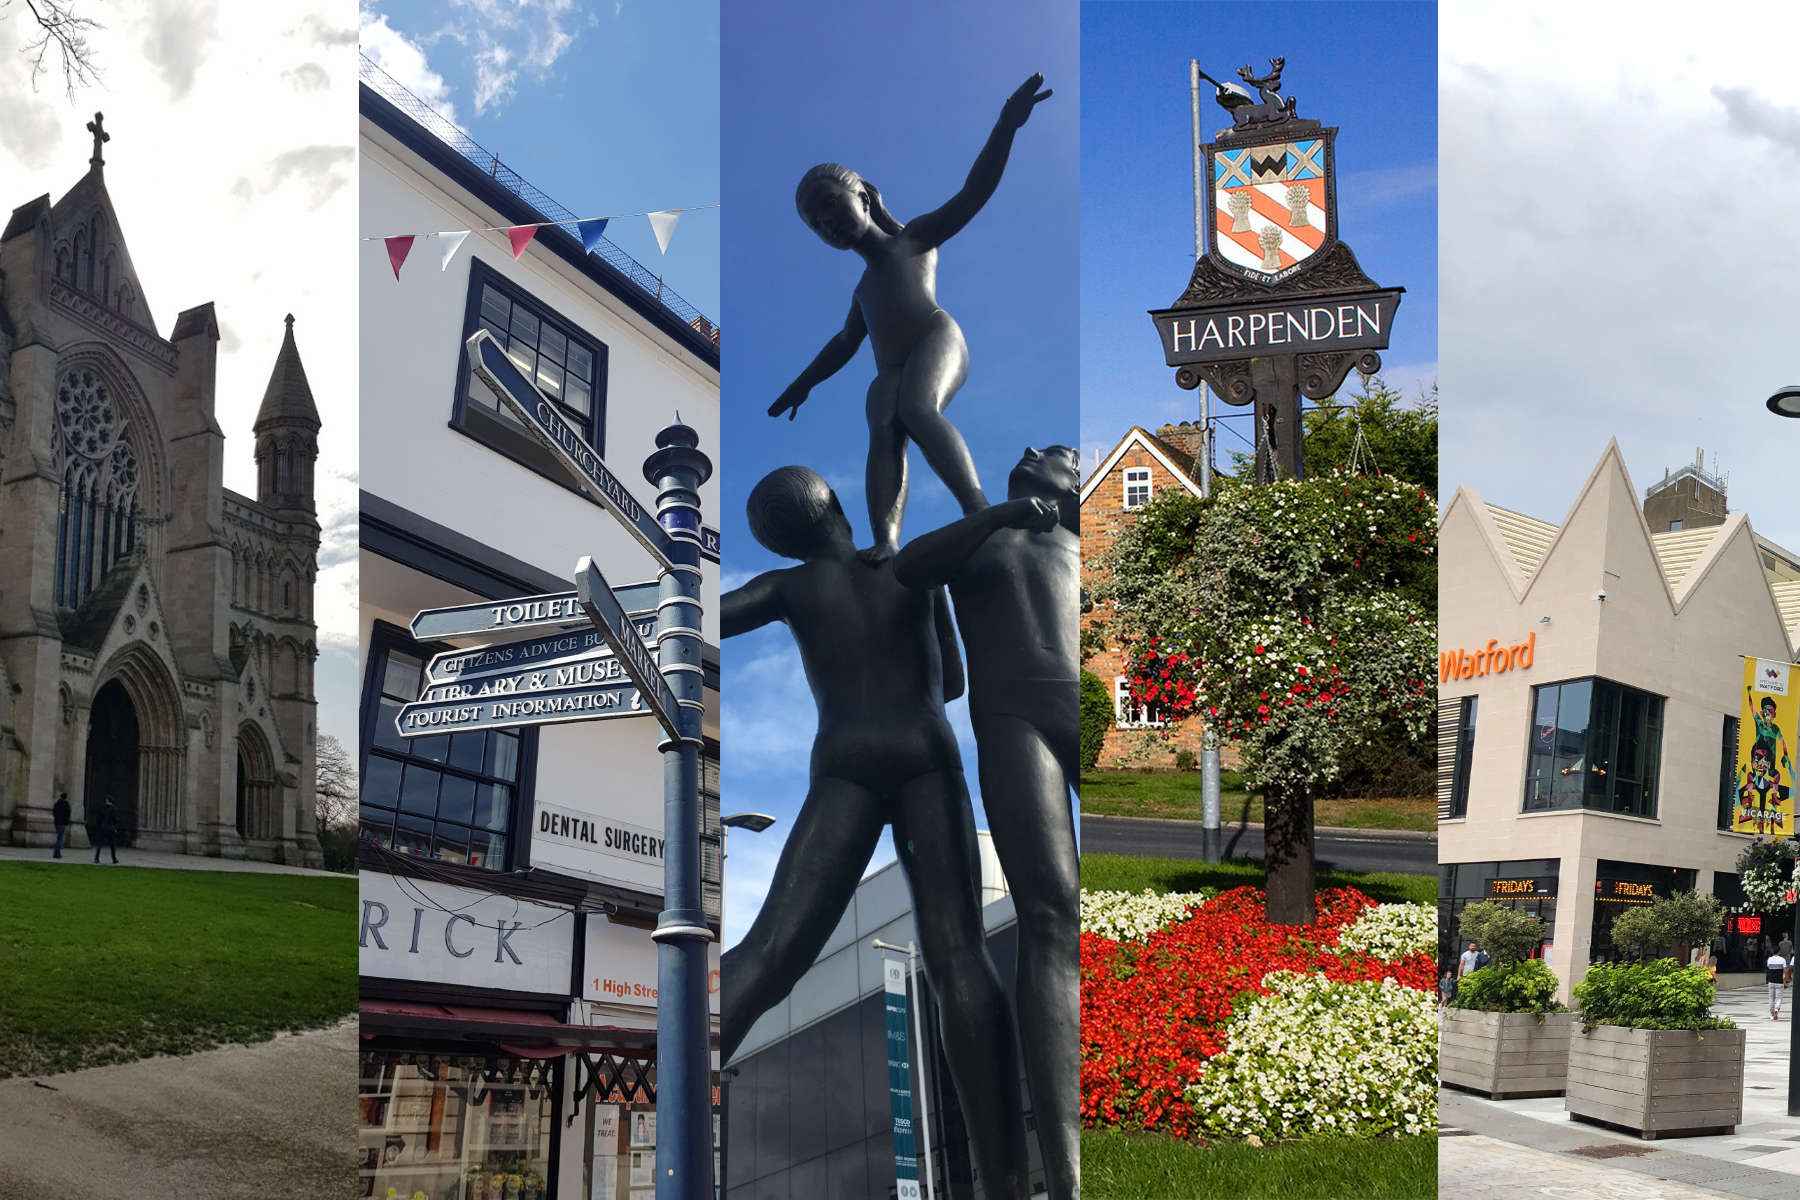 The guide to local rivalries between Hertfordshire towns